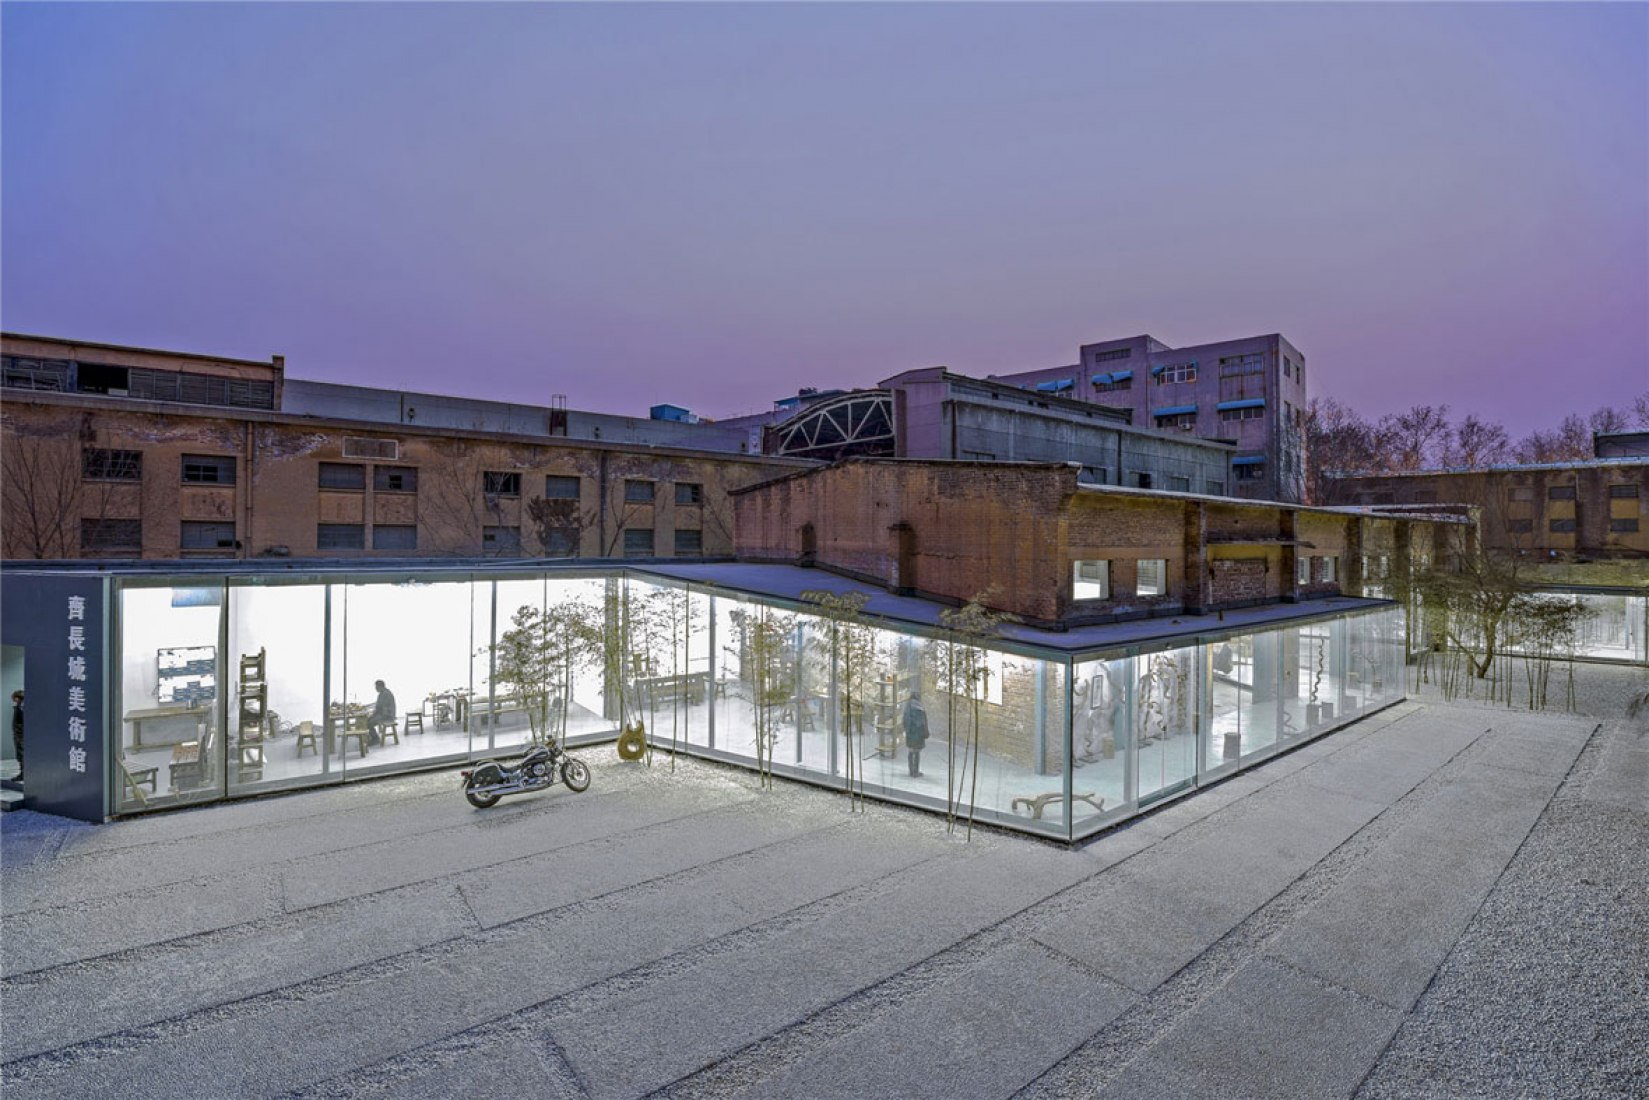 Aerial View. The Great Wall Museum of Fine Art by Archstudio. Photography courtesy of Archstudio.